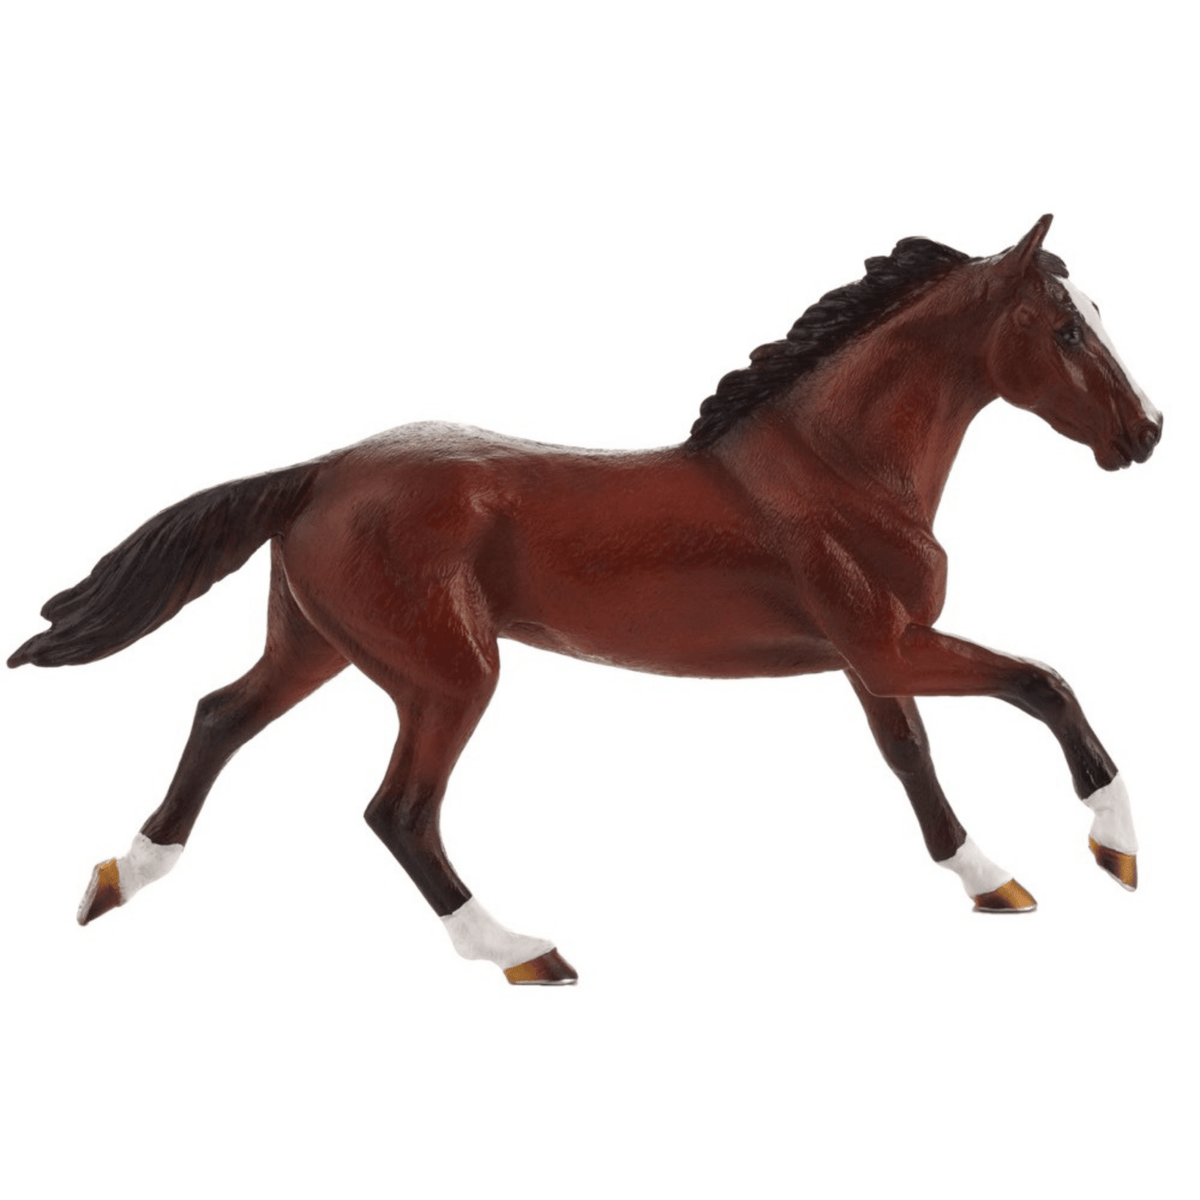 Animal Planet Thoroughbred Horse Toy Figure